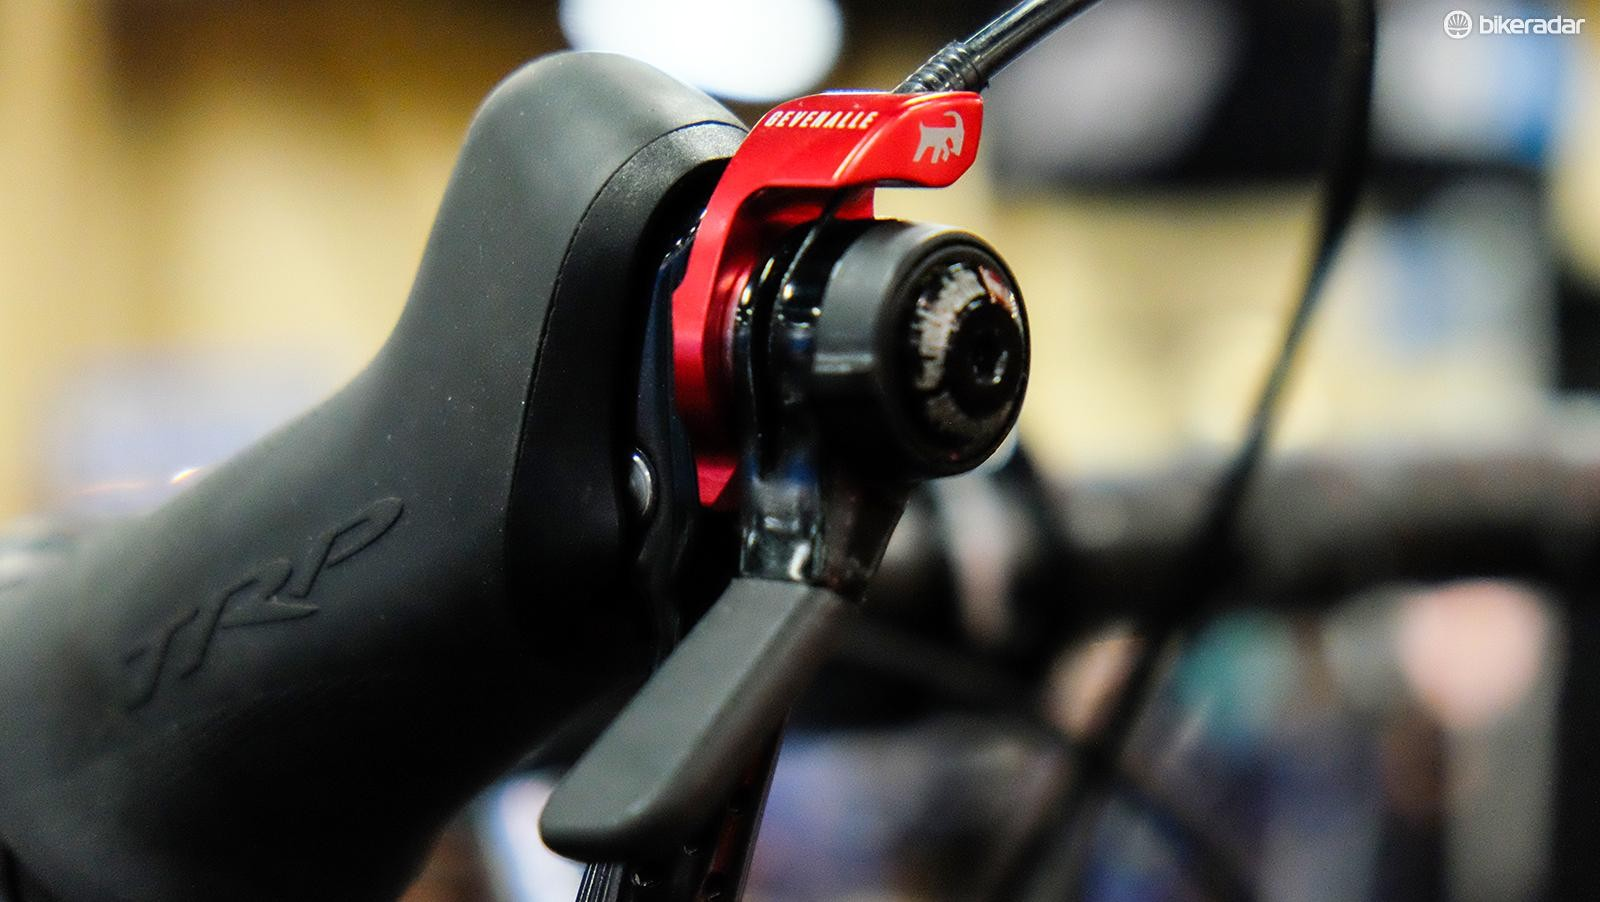 Friction shifting from a Genevalle shifter swings the derailleur across the 13-speed cassette